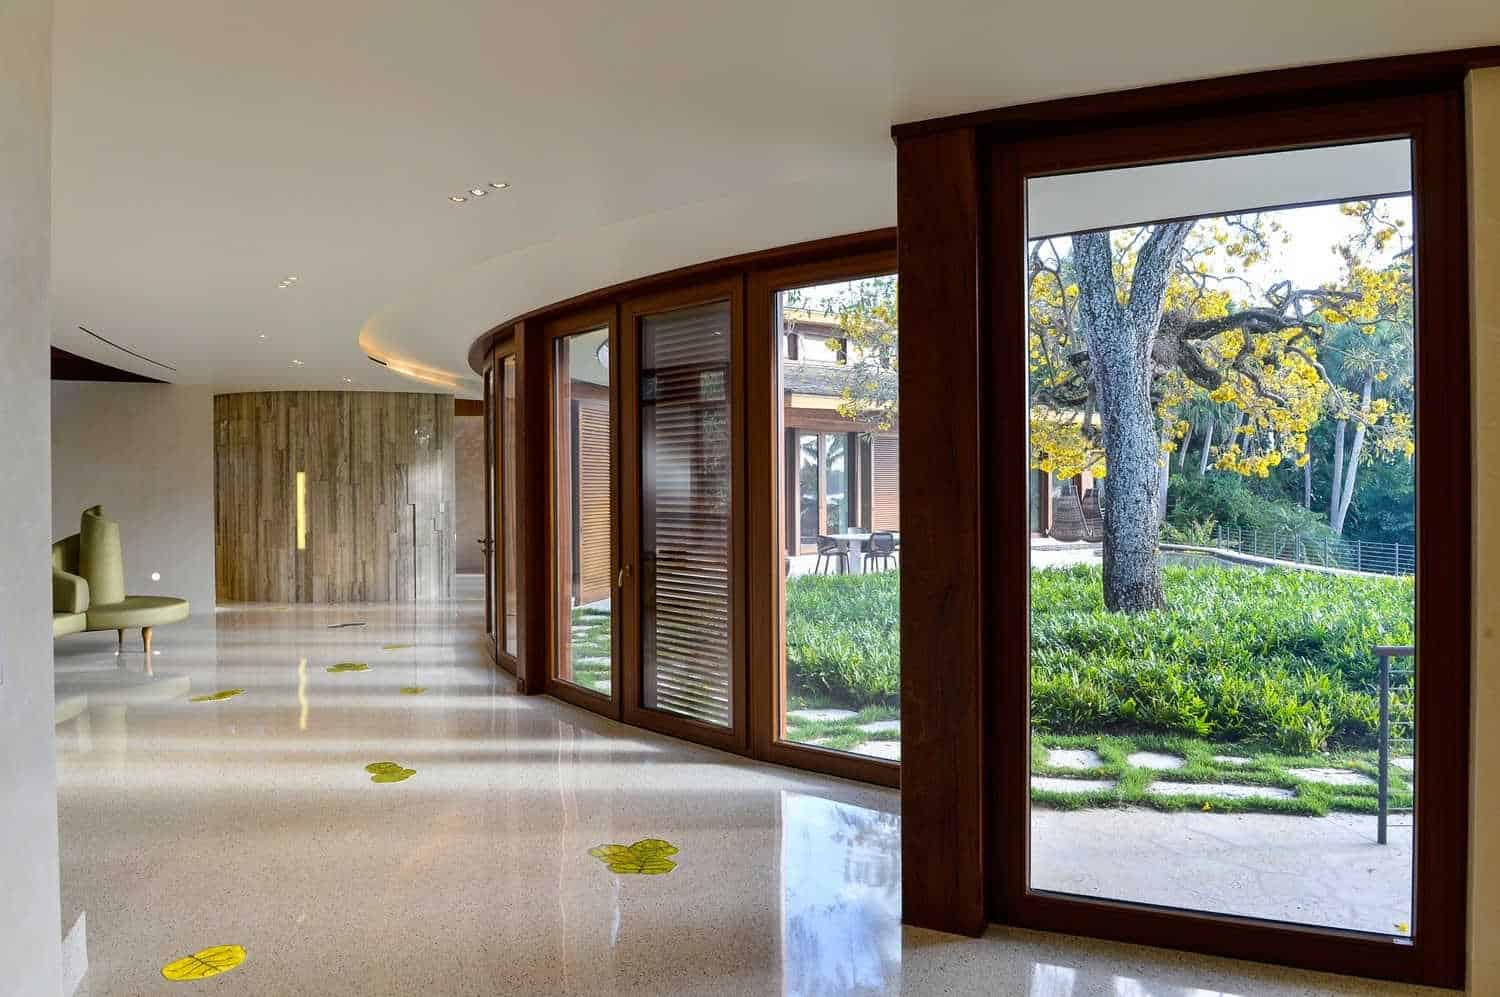 This entry has a huge space and is accessible through a couple of glass doors with wooden frame. The floor is stunning and it also has a lounging area for visitors.